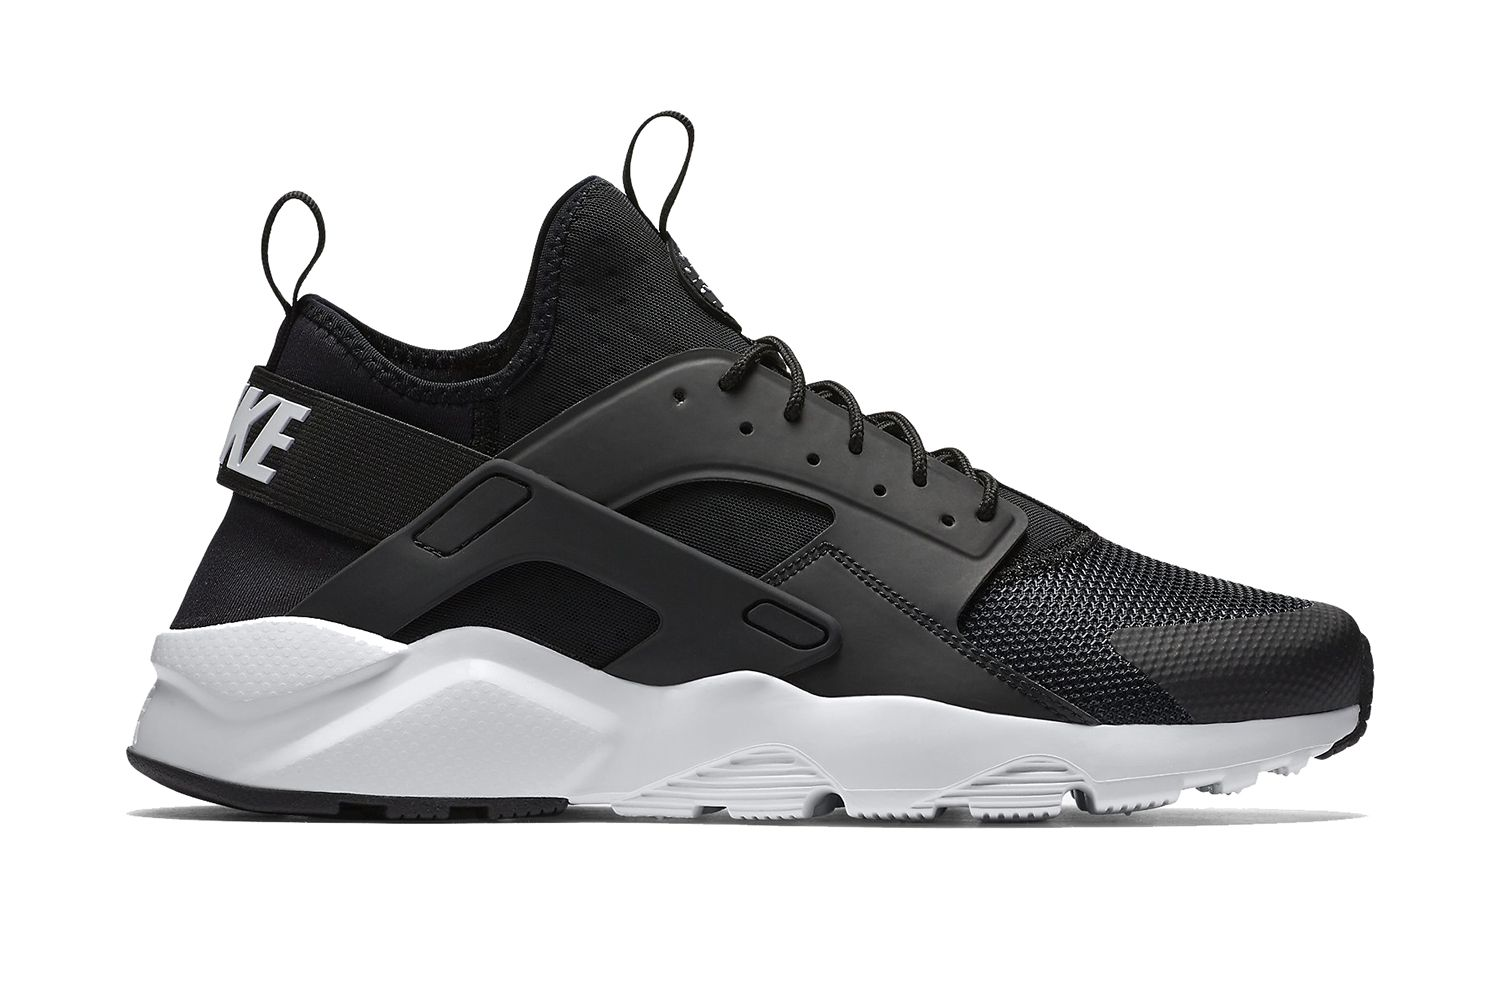 Nike Introduces a Men's Version of the Air Huarache Ultra ...